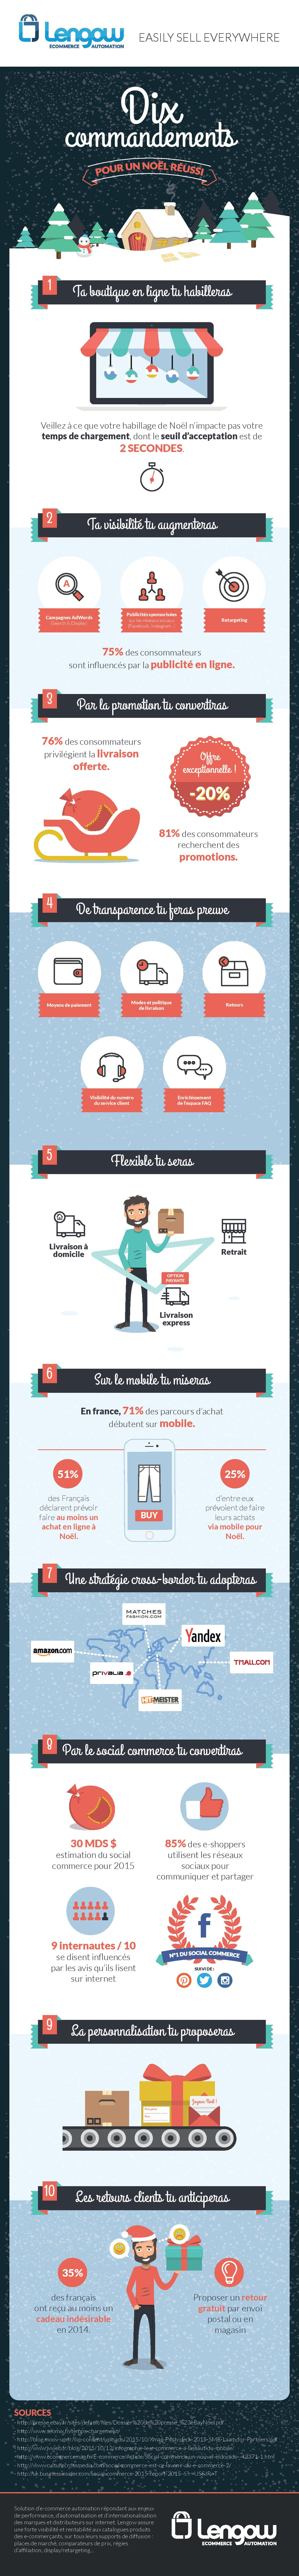 infographie_Noel_FR_Lengow-page-001